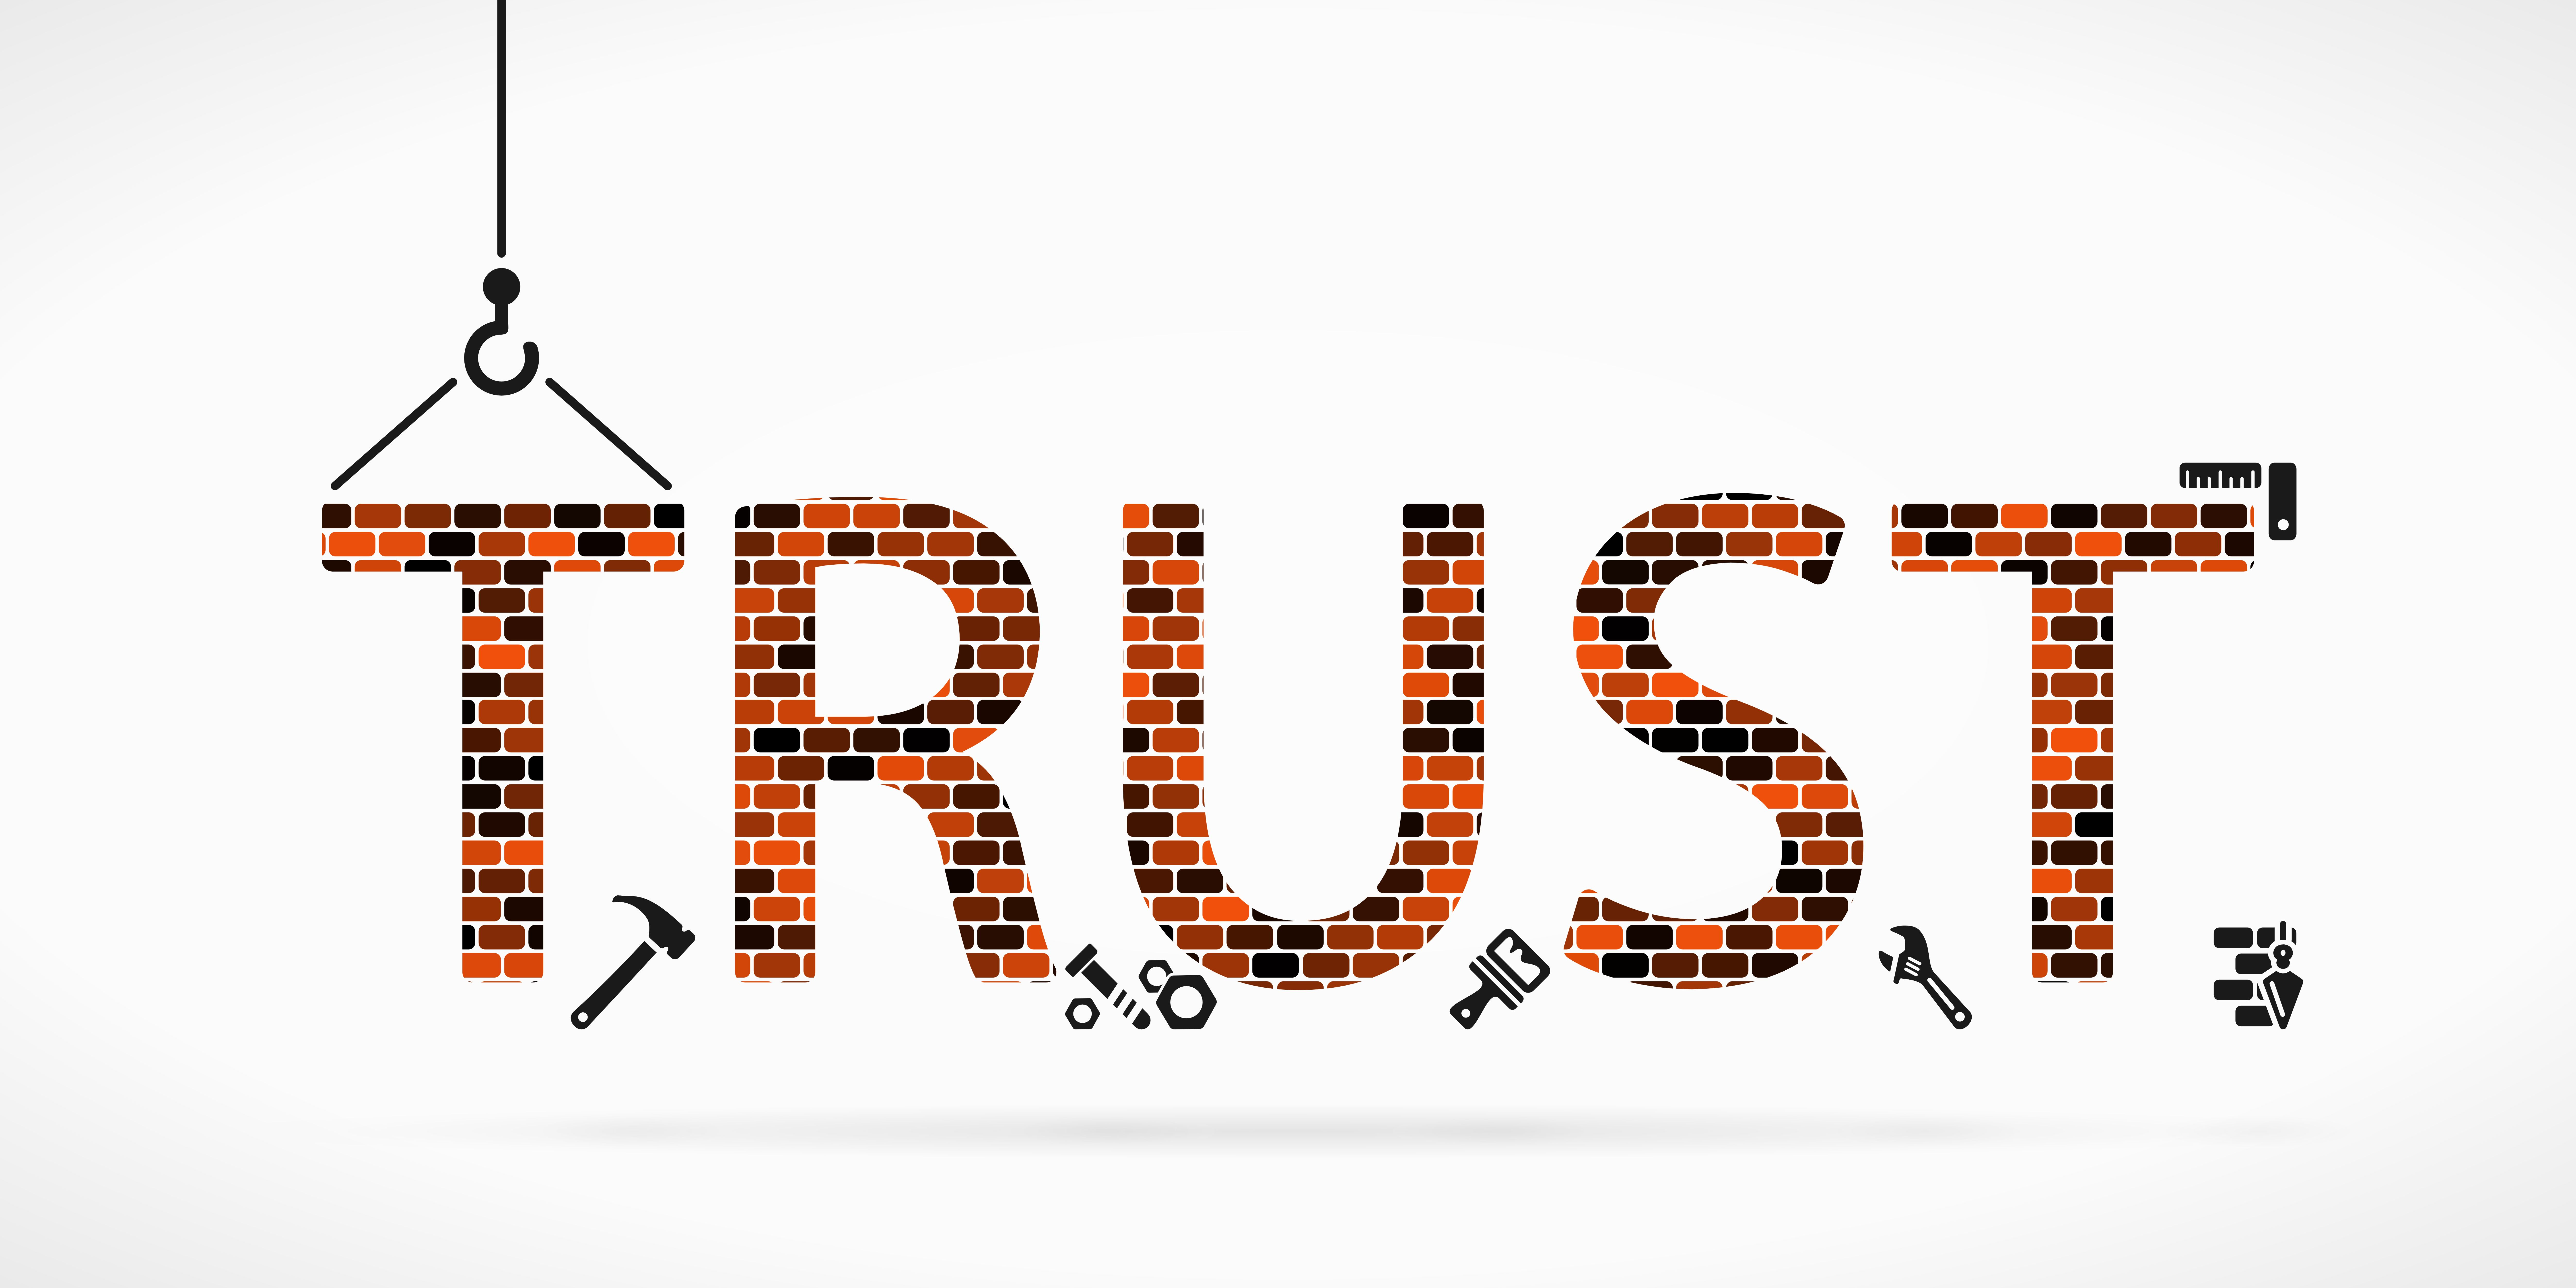 5-cant-miss-ways-to-increase-trust-conversions-on-your-pricing-page-featured.jpg